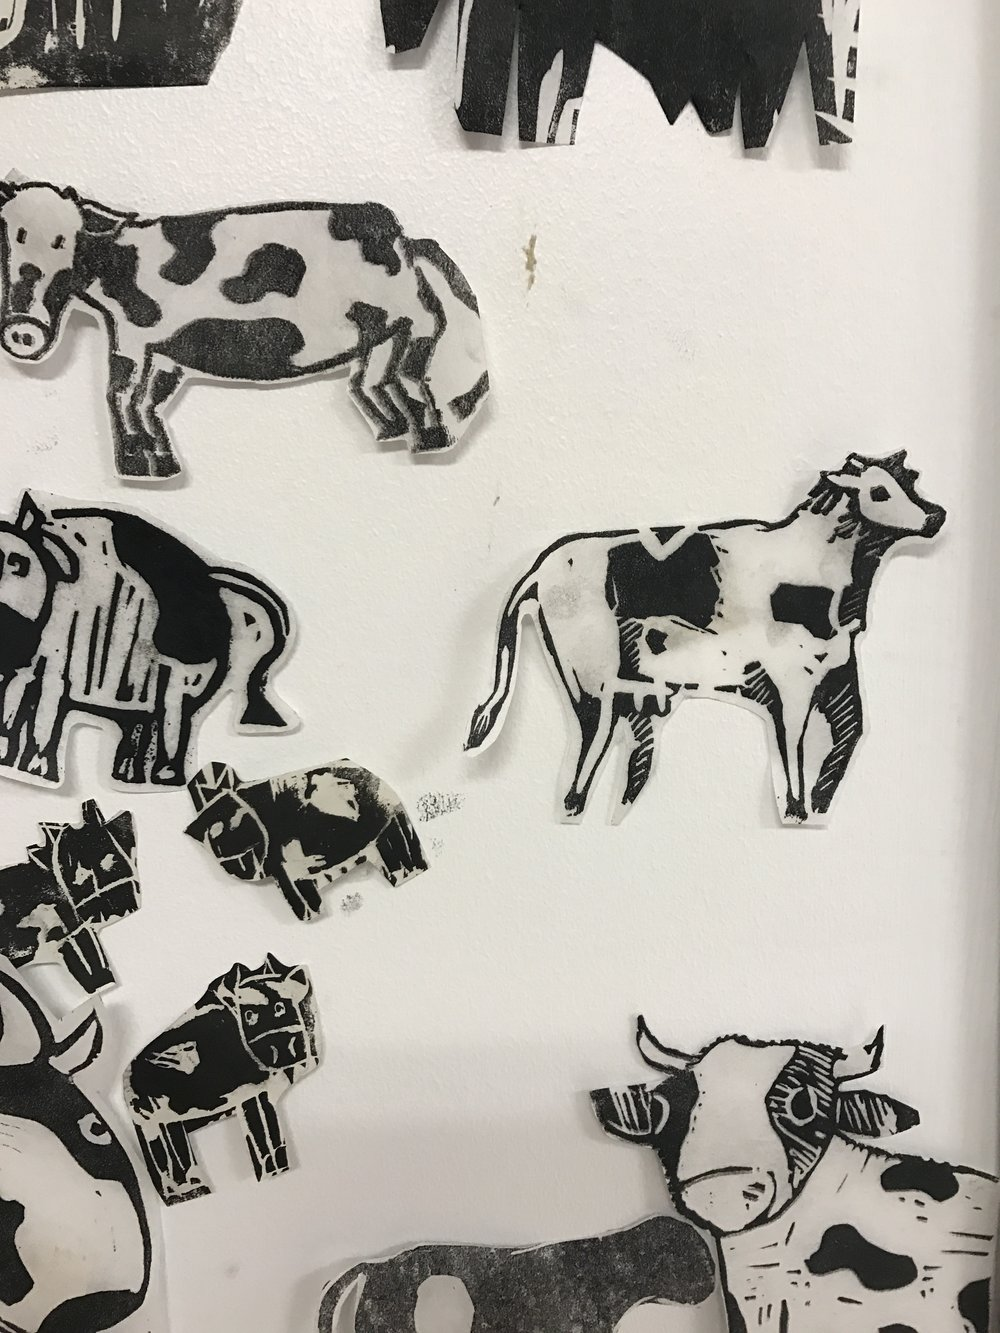 Mooooooooooore printmakers on the way